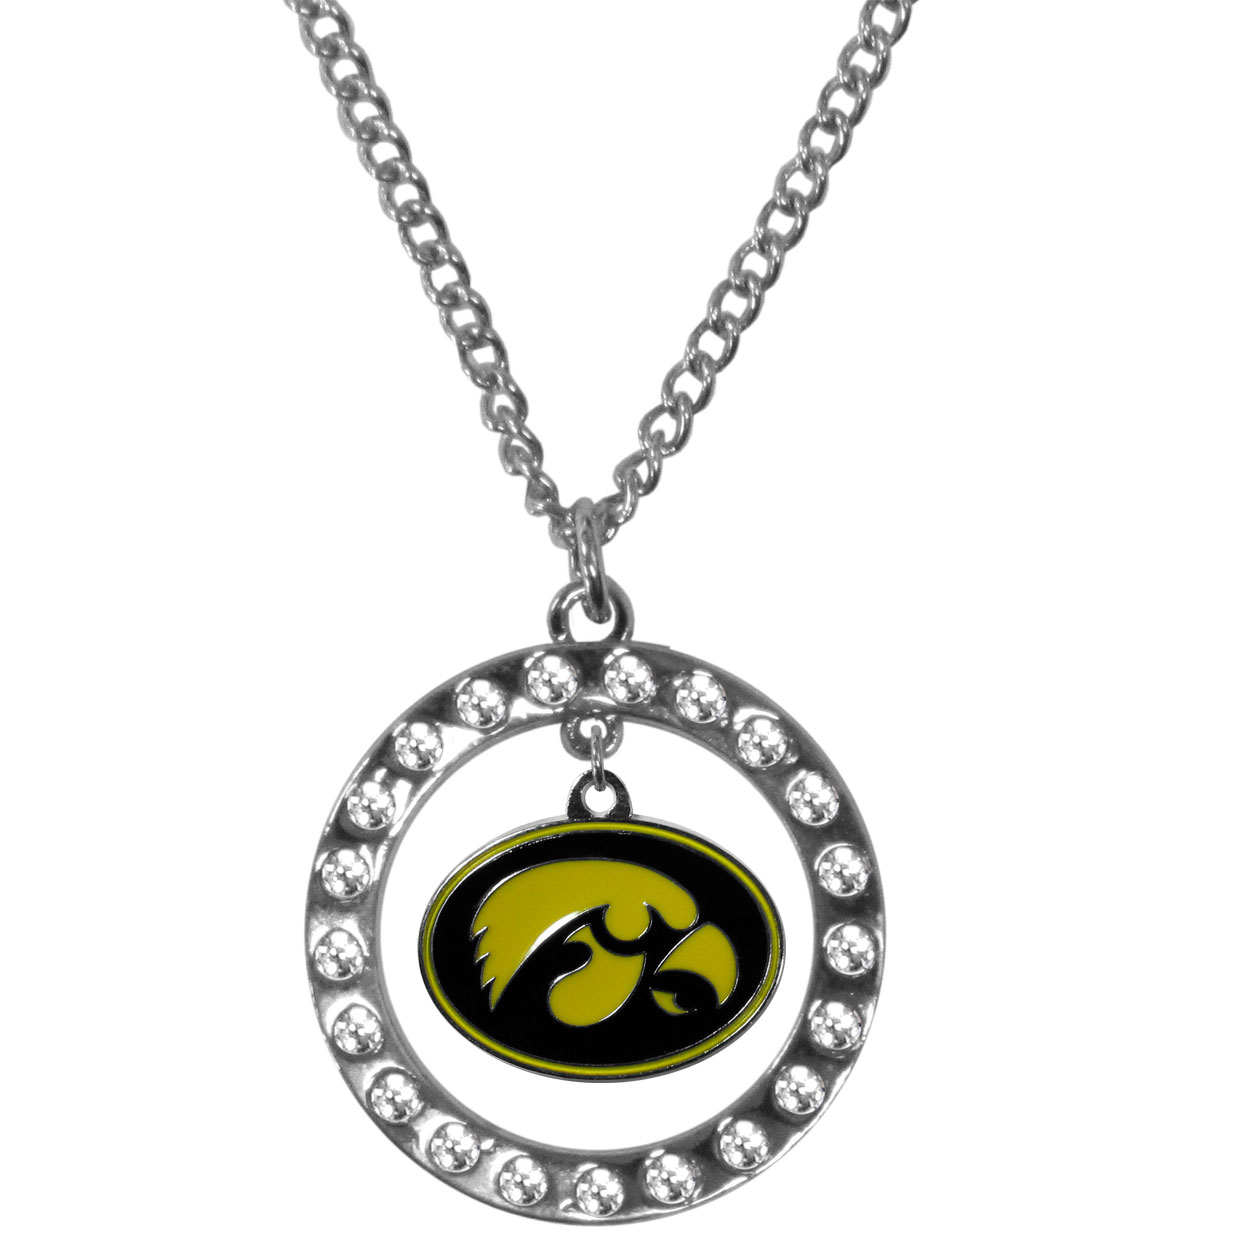 Iowa Hawkeyes Rhinestone Hoop Necklaces - Our Iowa Hawkeyes rhinestone hoop necklace comes on an 18 inch chain and features a hoop covered in rhinestones with a high polish chrome finish and a cast and enameled team charm dangling in the center.